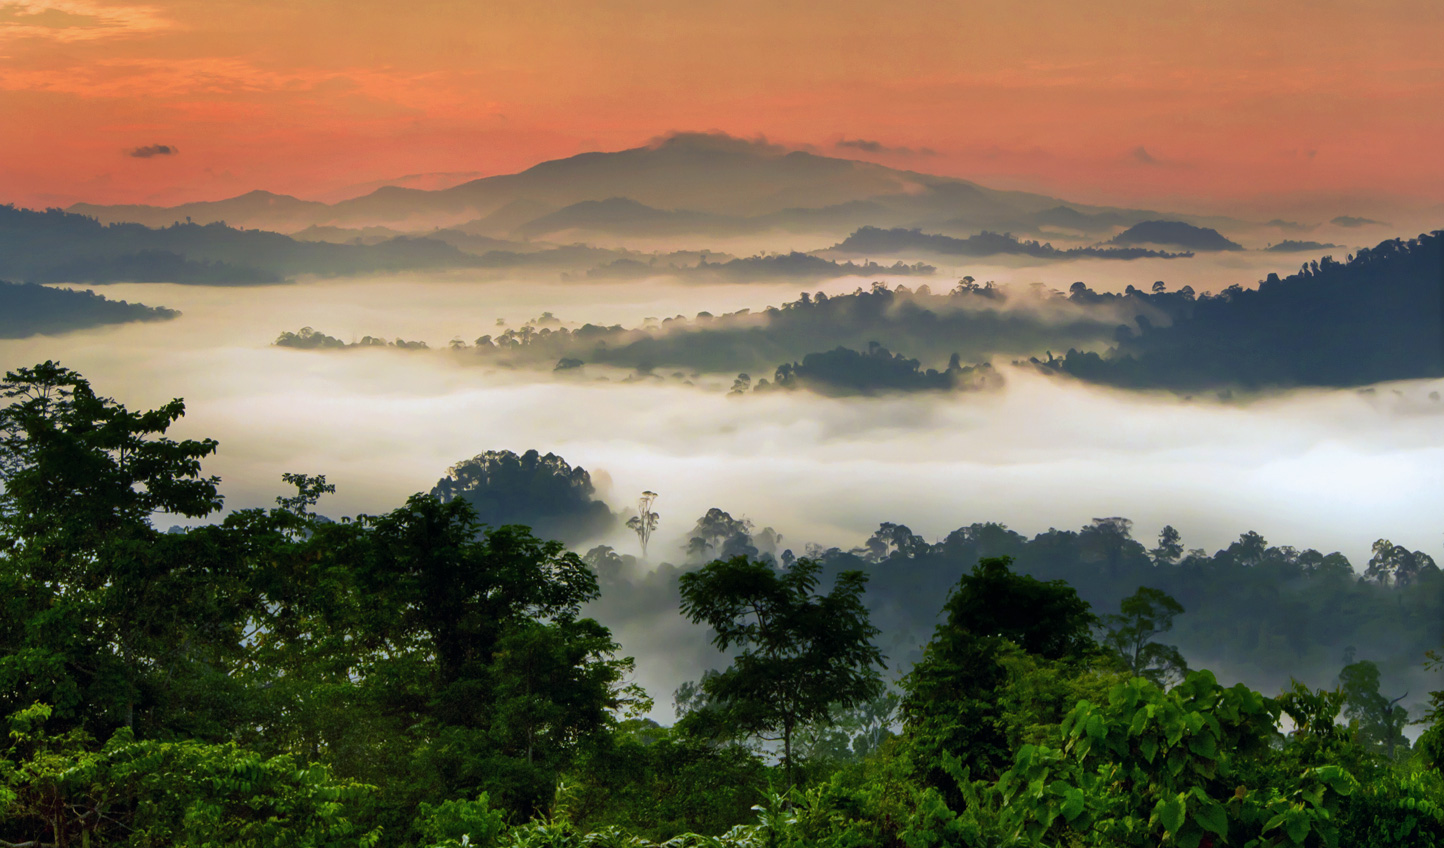 Sunrise view over the jungle of Borneo